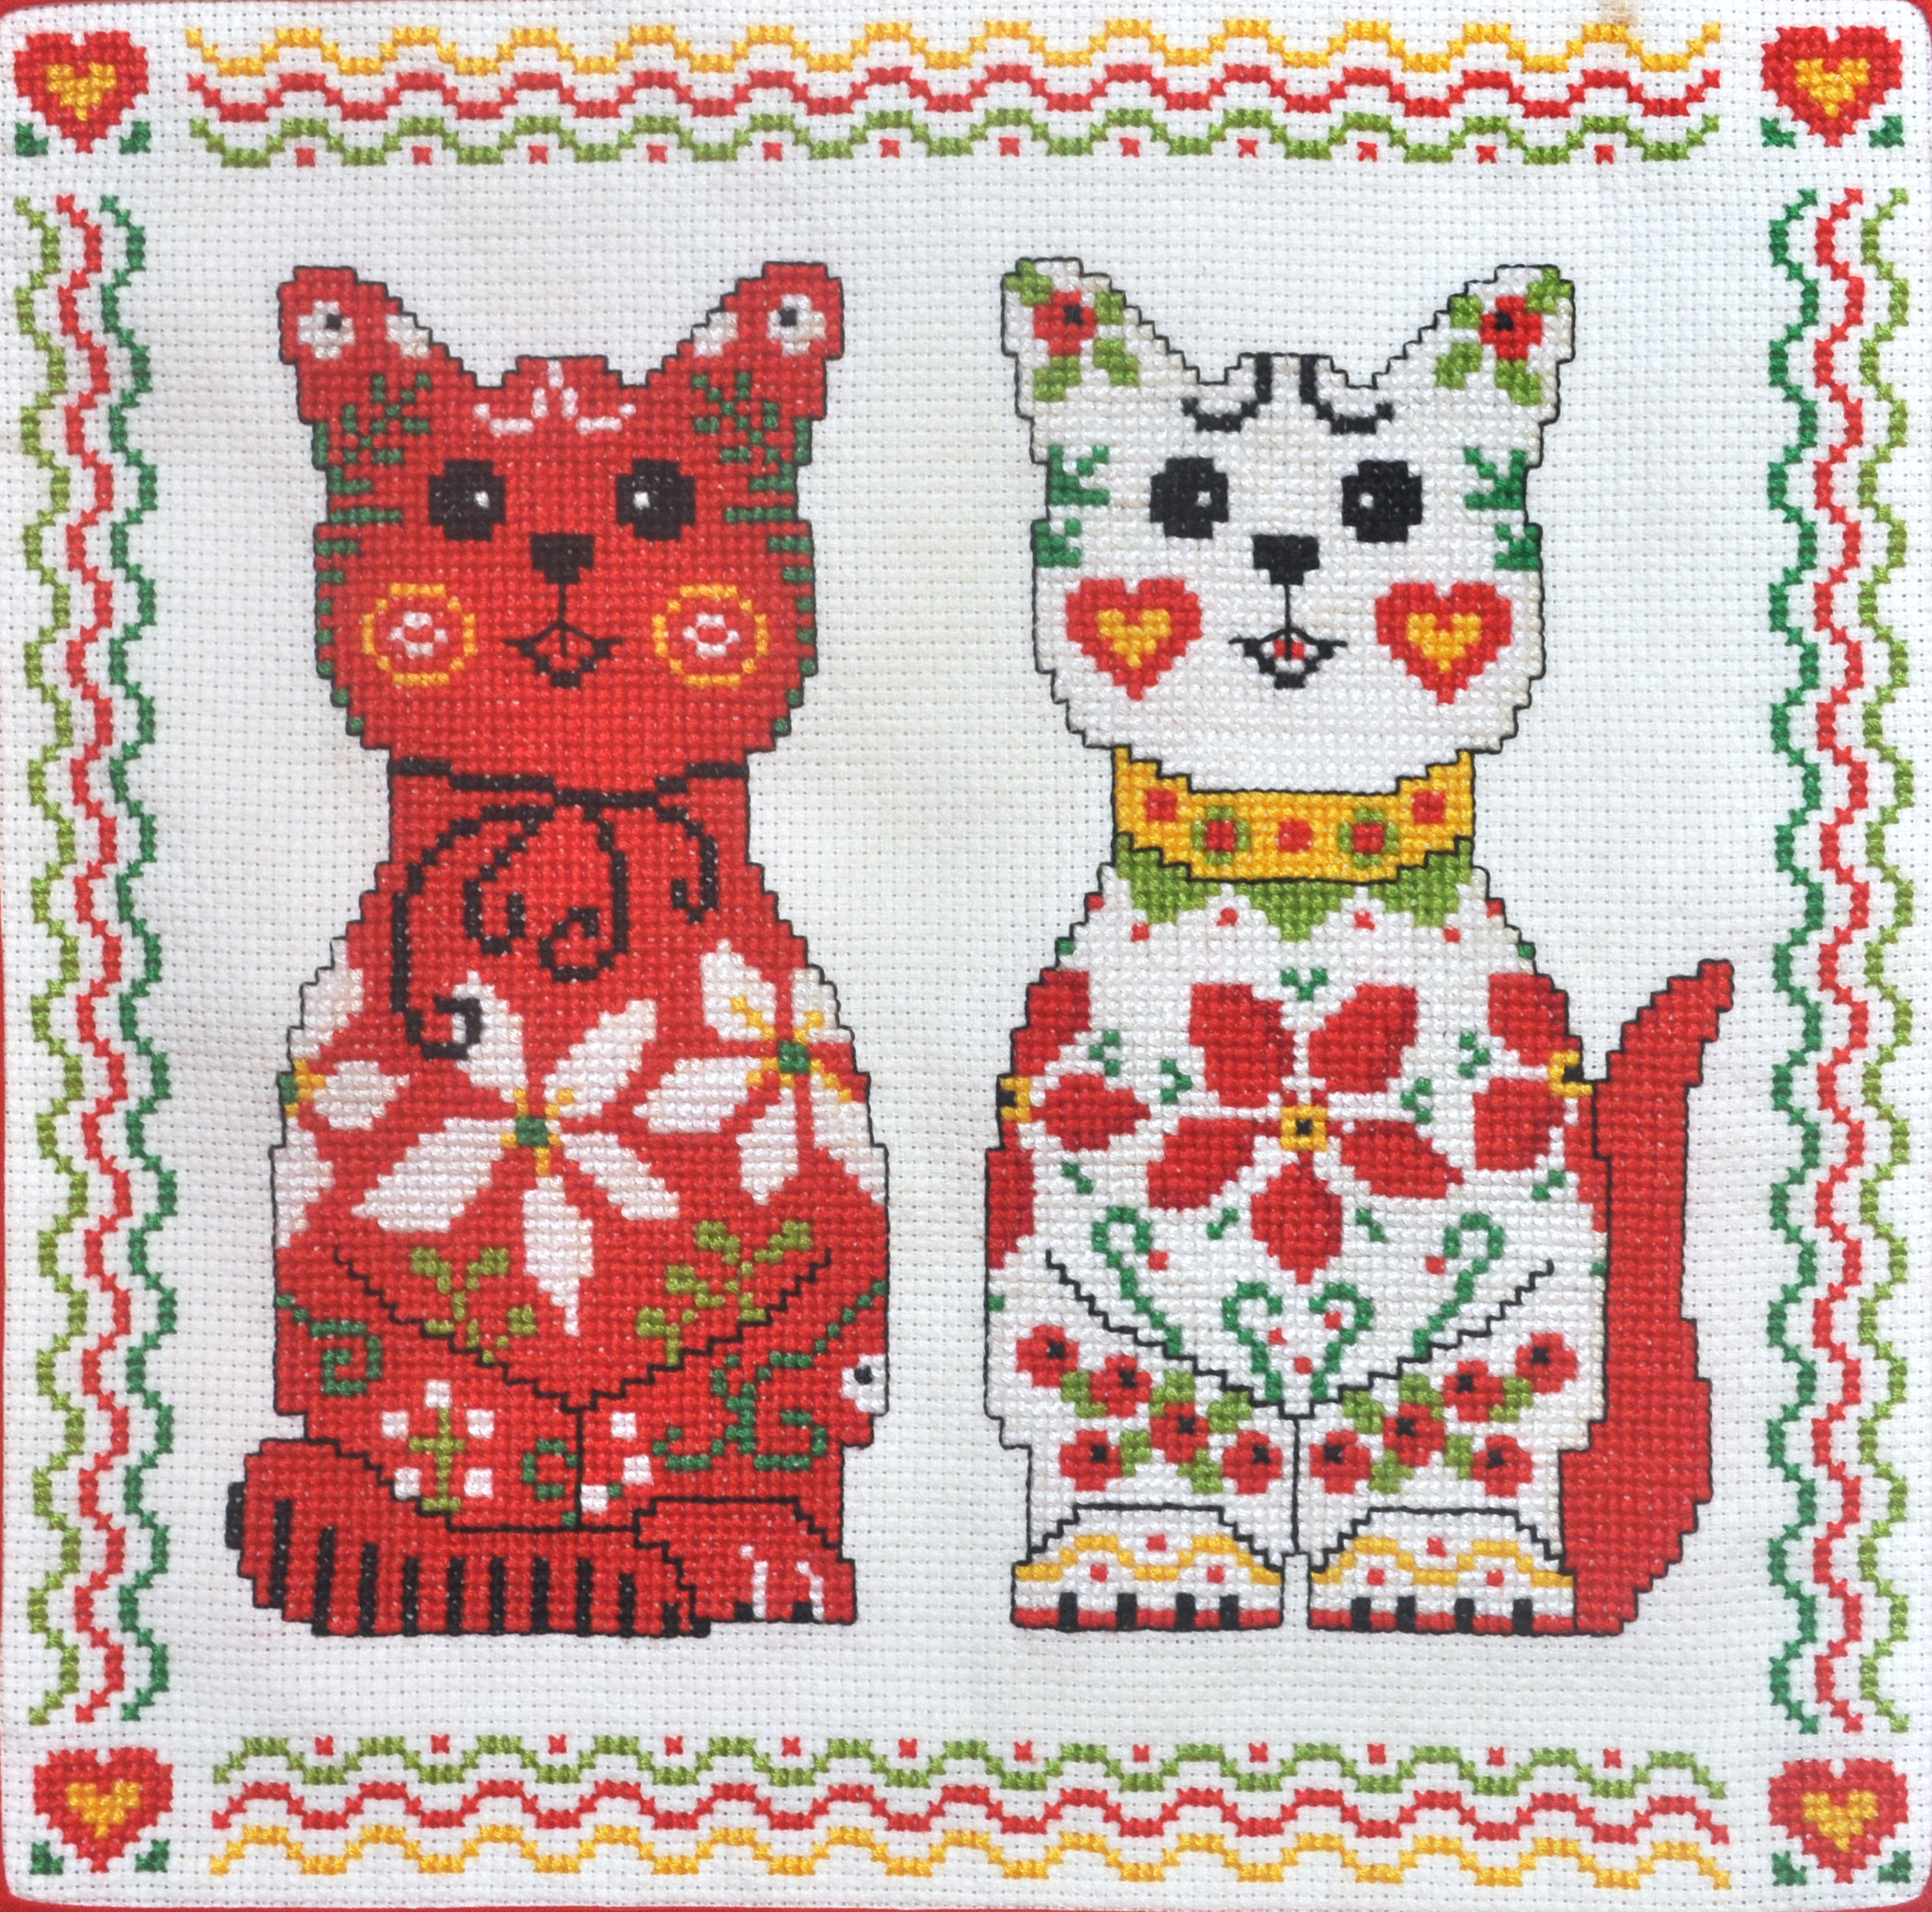 Two elegant cats, cross stitch pattern by Iveta Hlavinova